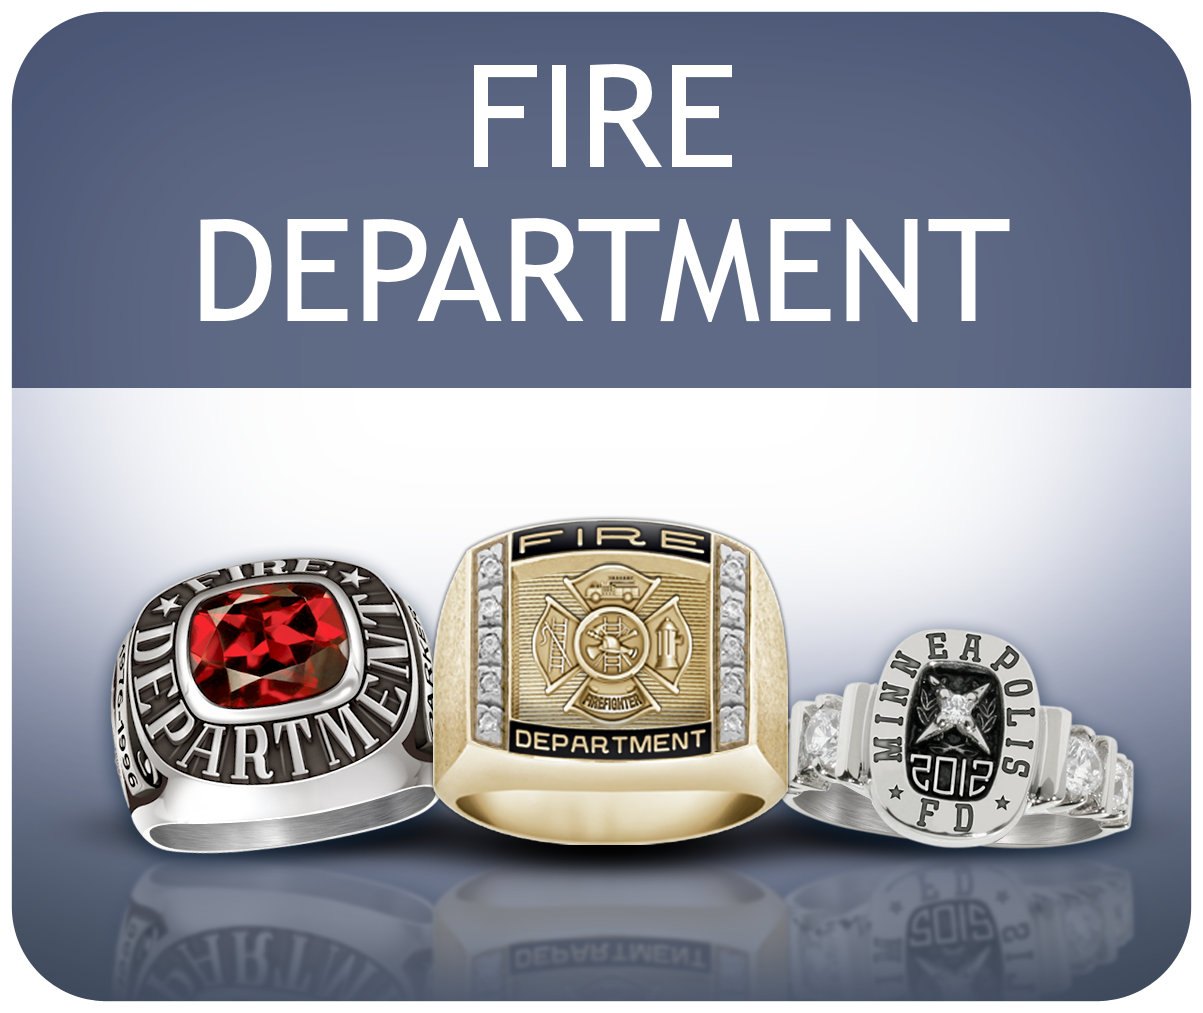 Fire Department Rings